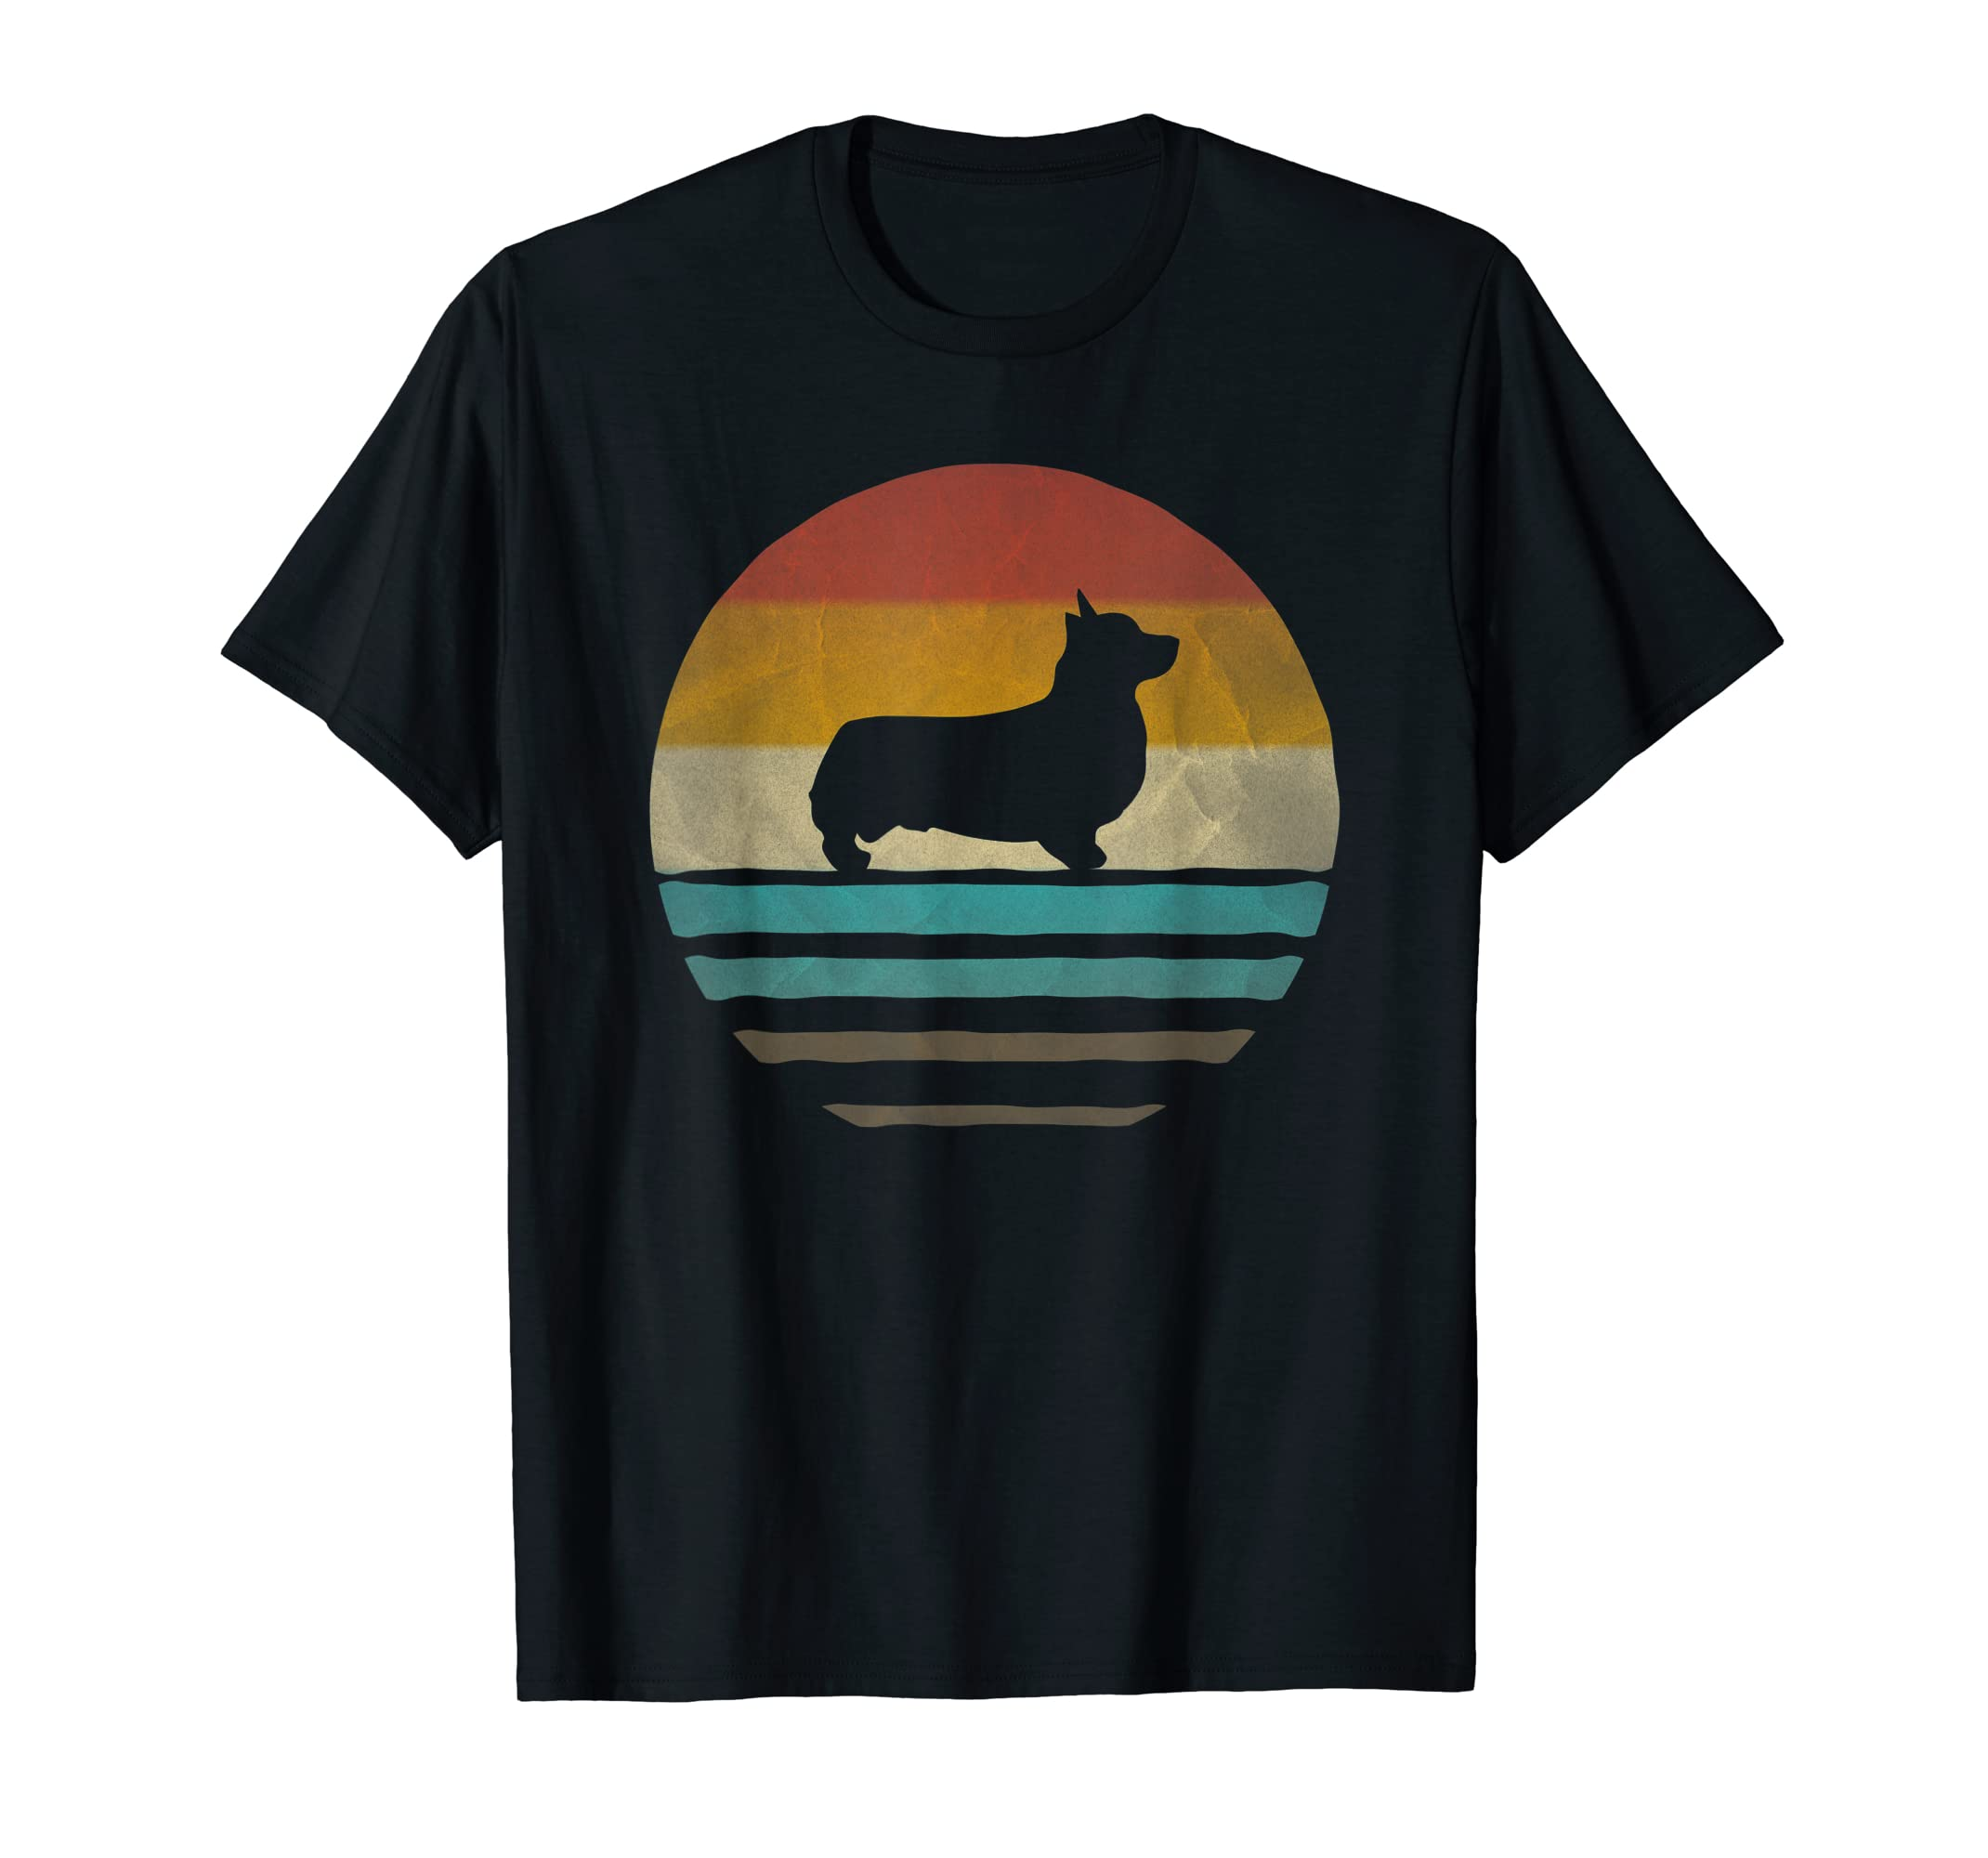 Corgi Dog Shirt Retro Vintage 70s Silhouette Breed Gift-Men's T-Shirt-Black